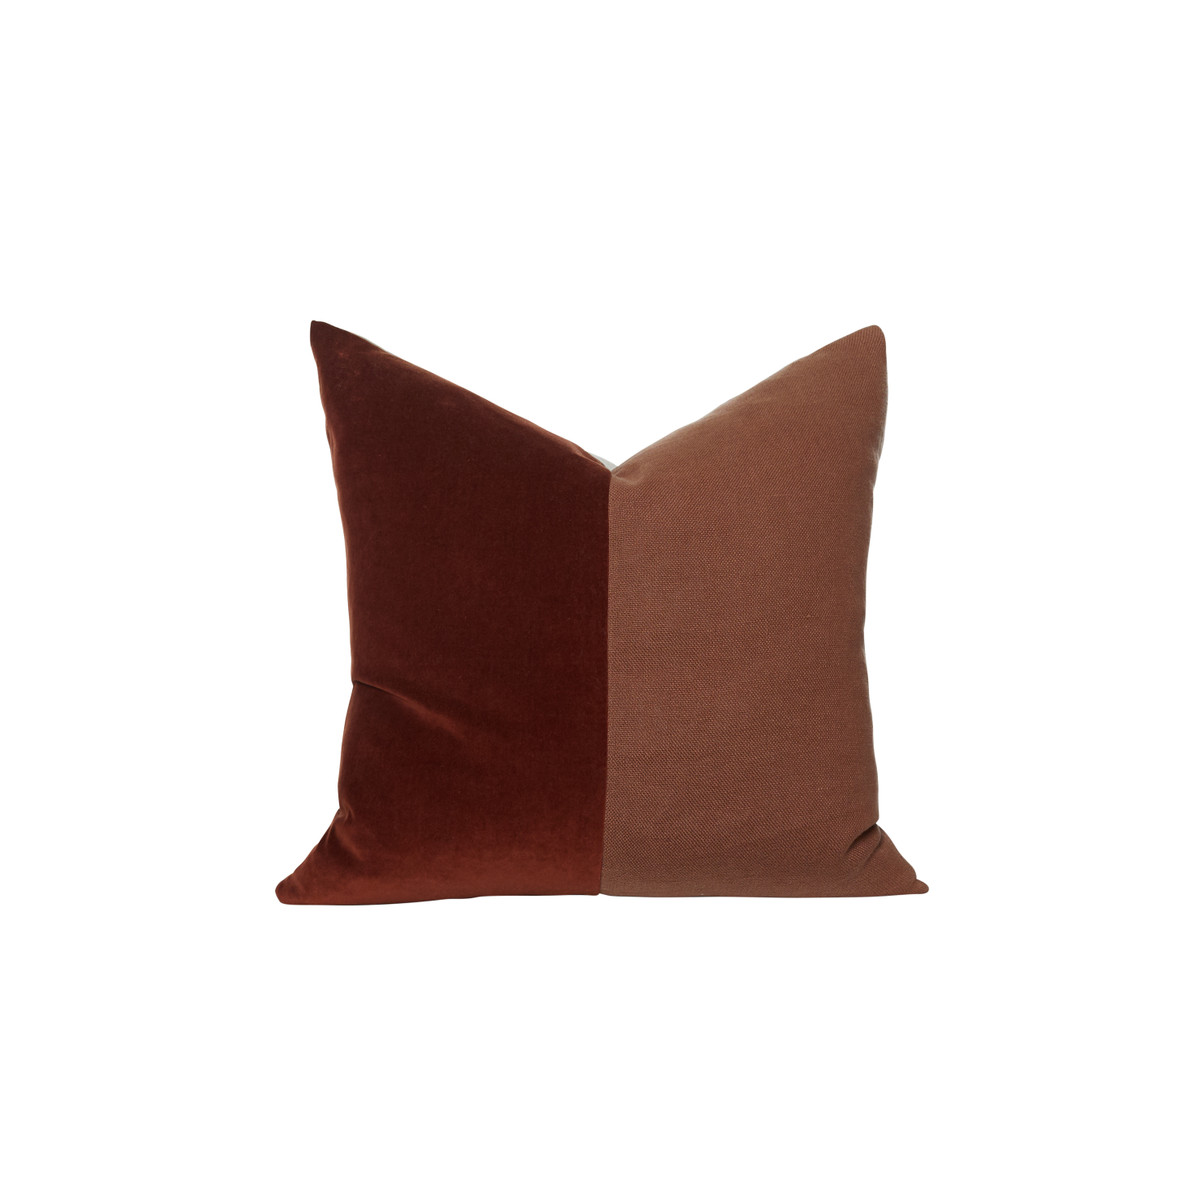 Saint Red Jasper Velvet Decorative Pillow - Front